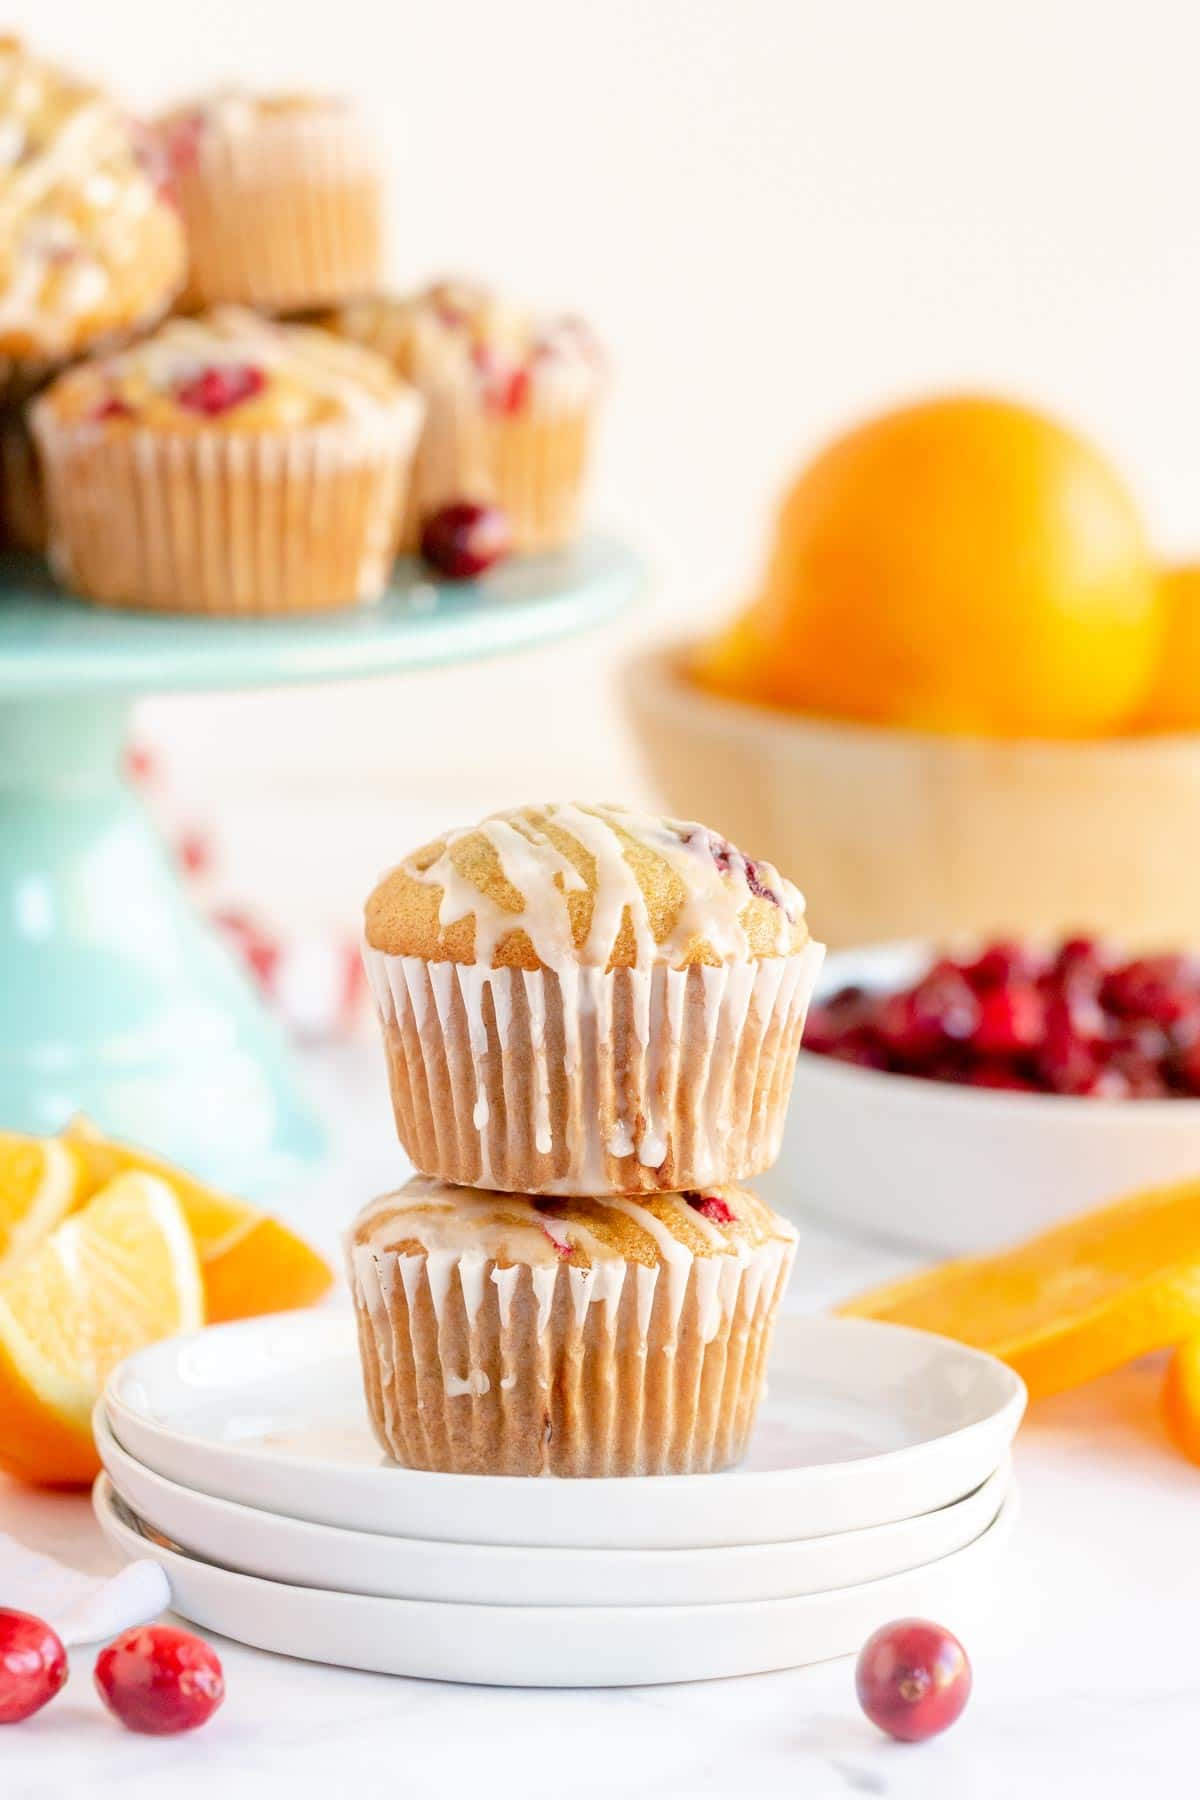 Two cranberry orange muffins stacked on top of each other on white plates